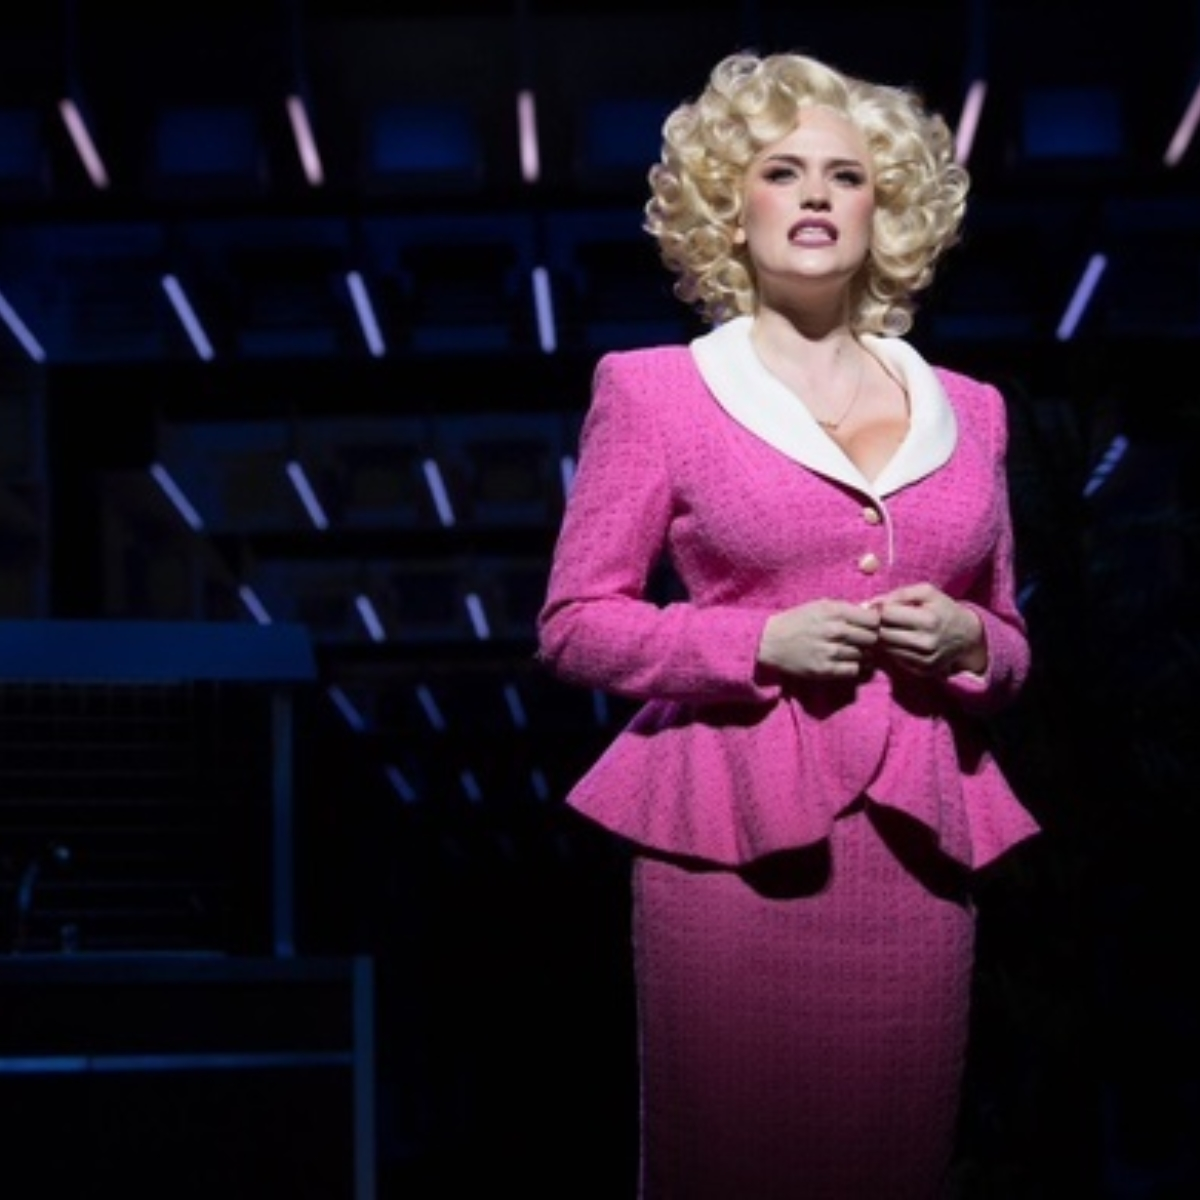 Dolly Parton presents: 9 to 5 The Musical Images